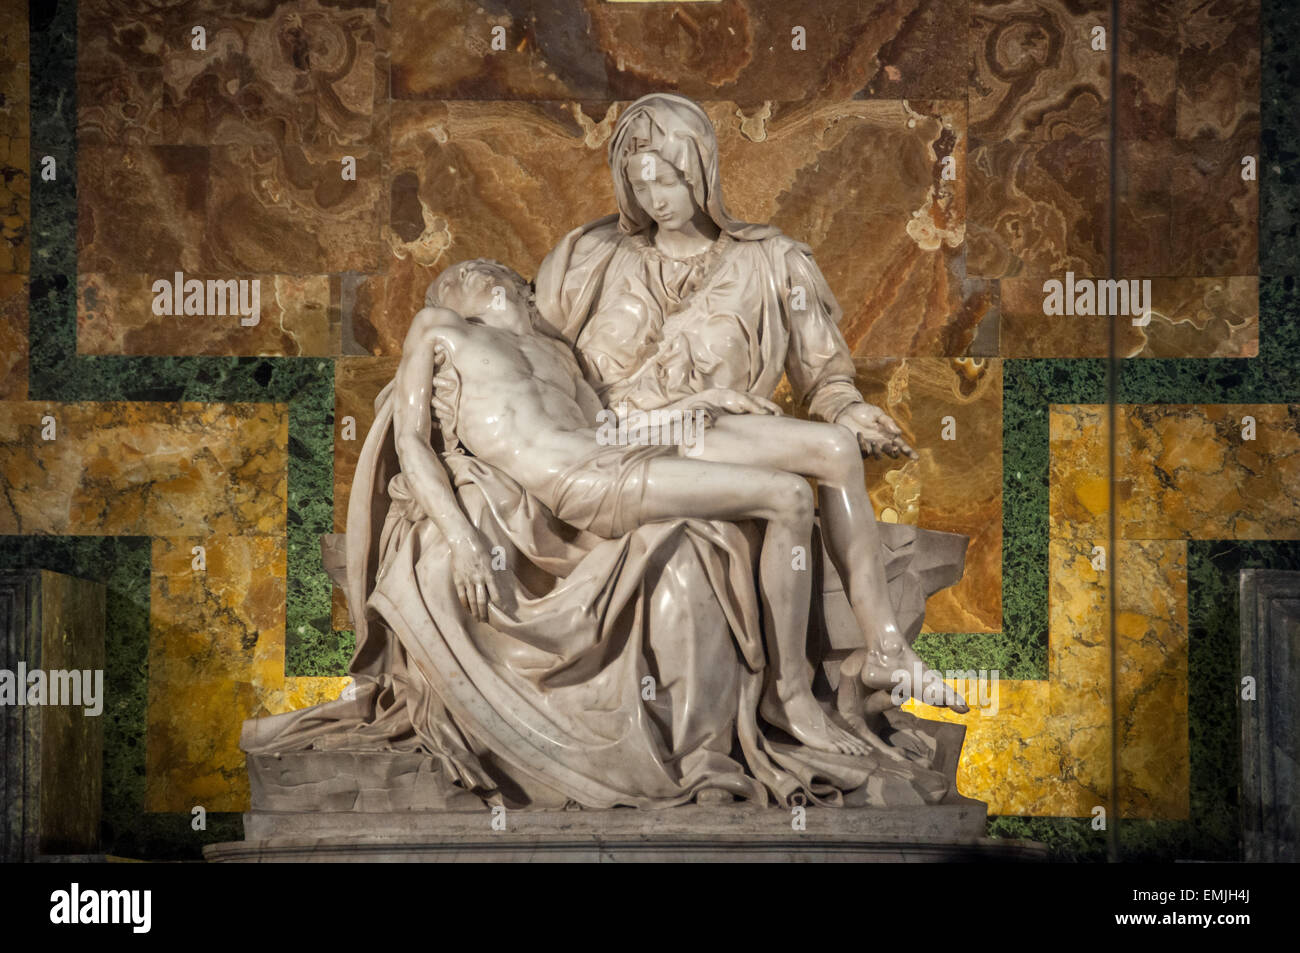 The body about the virgin mary